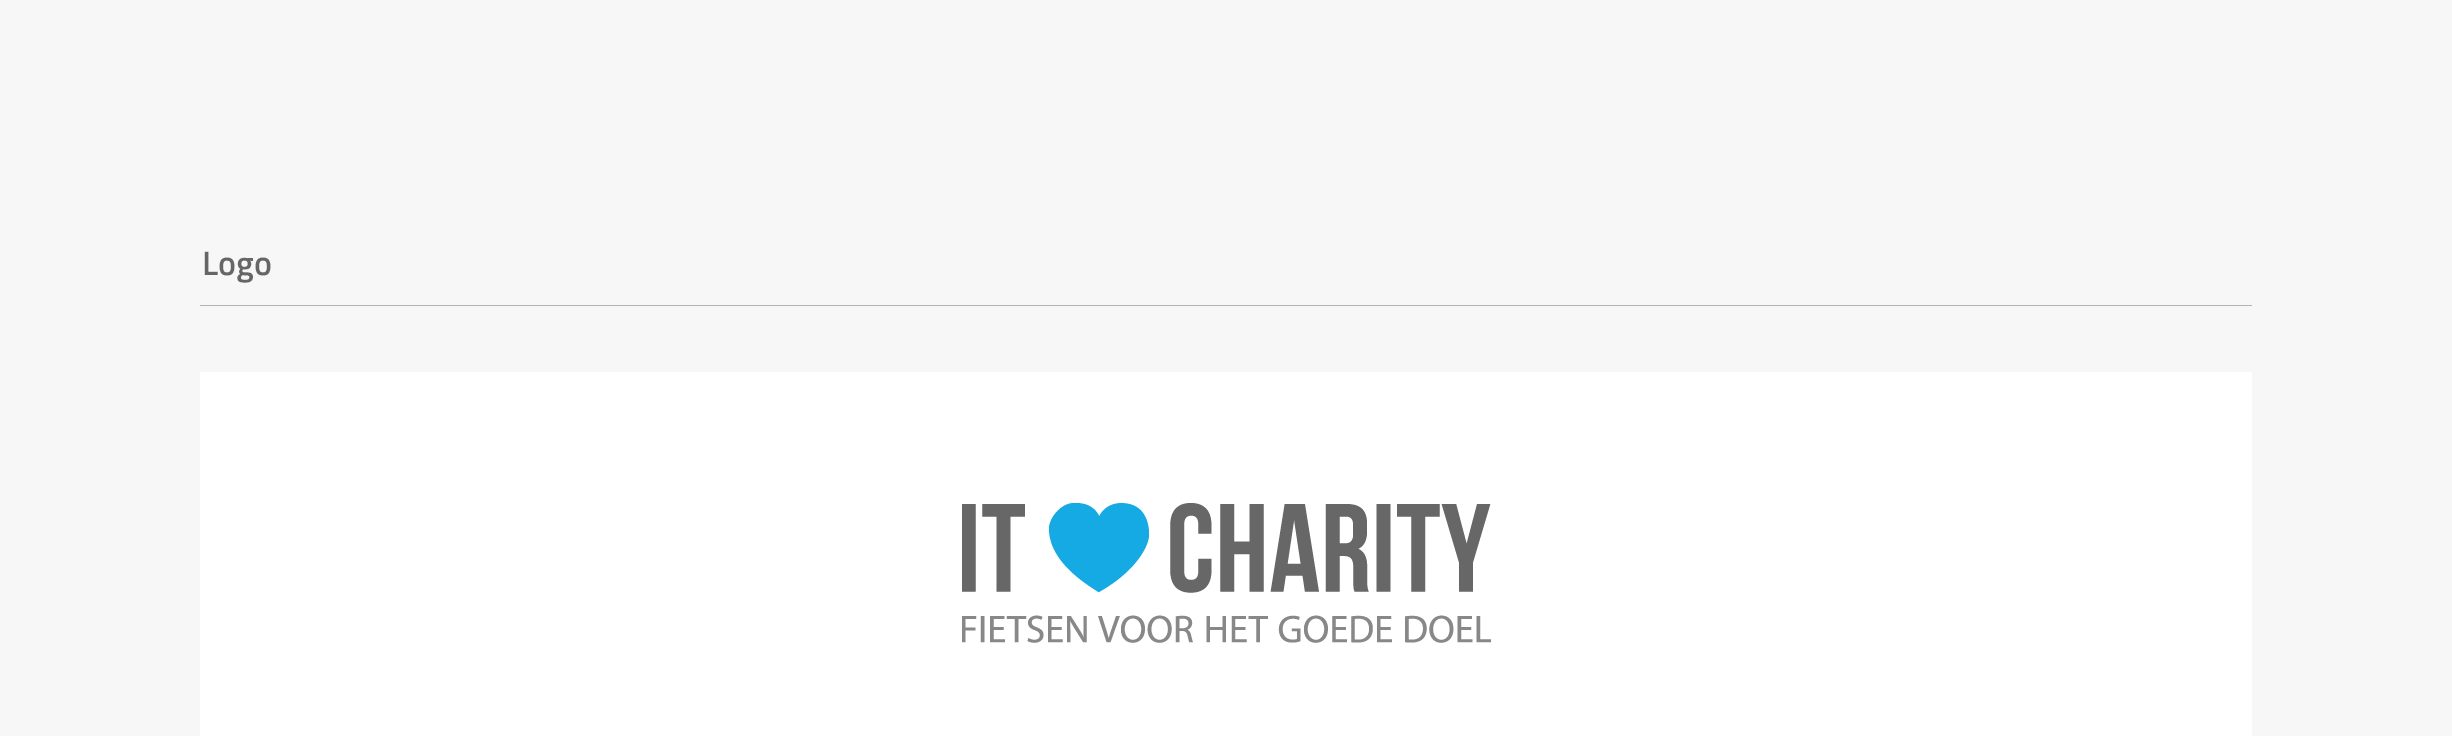 IT for Charity website - final logo